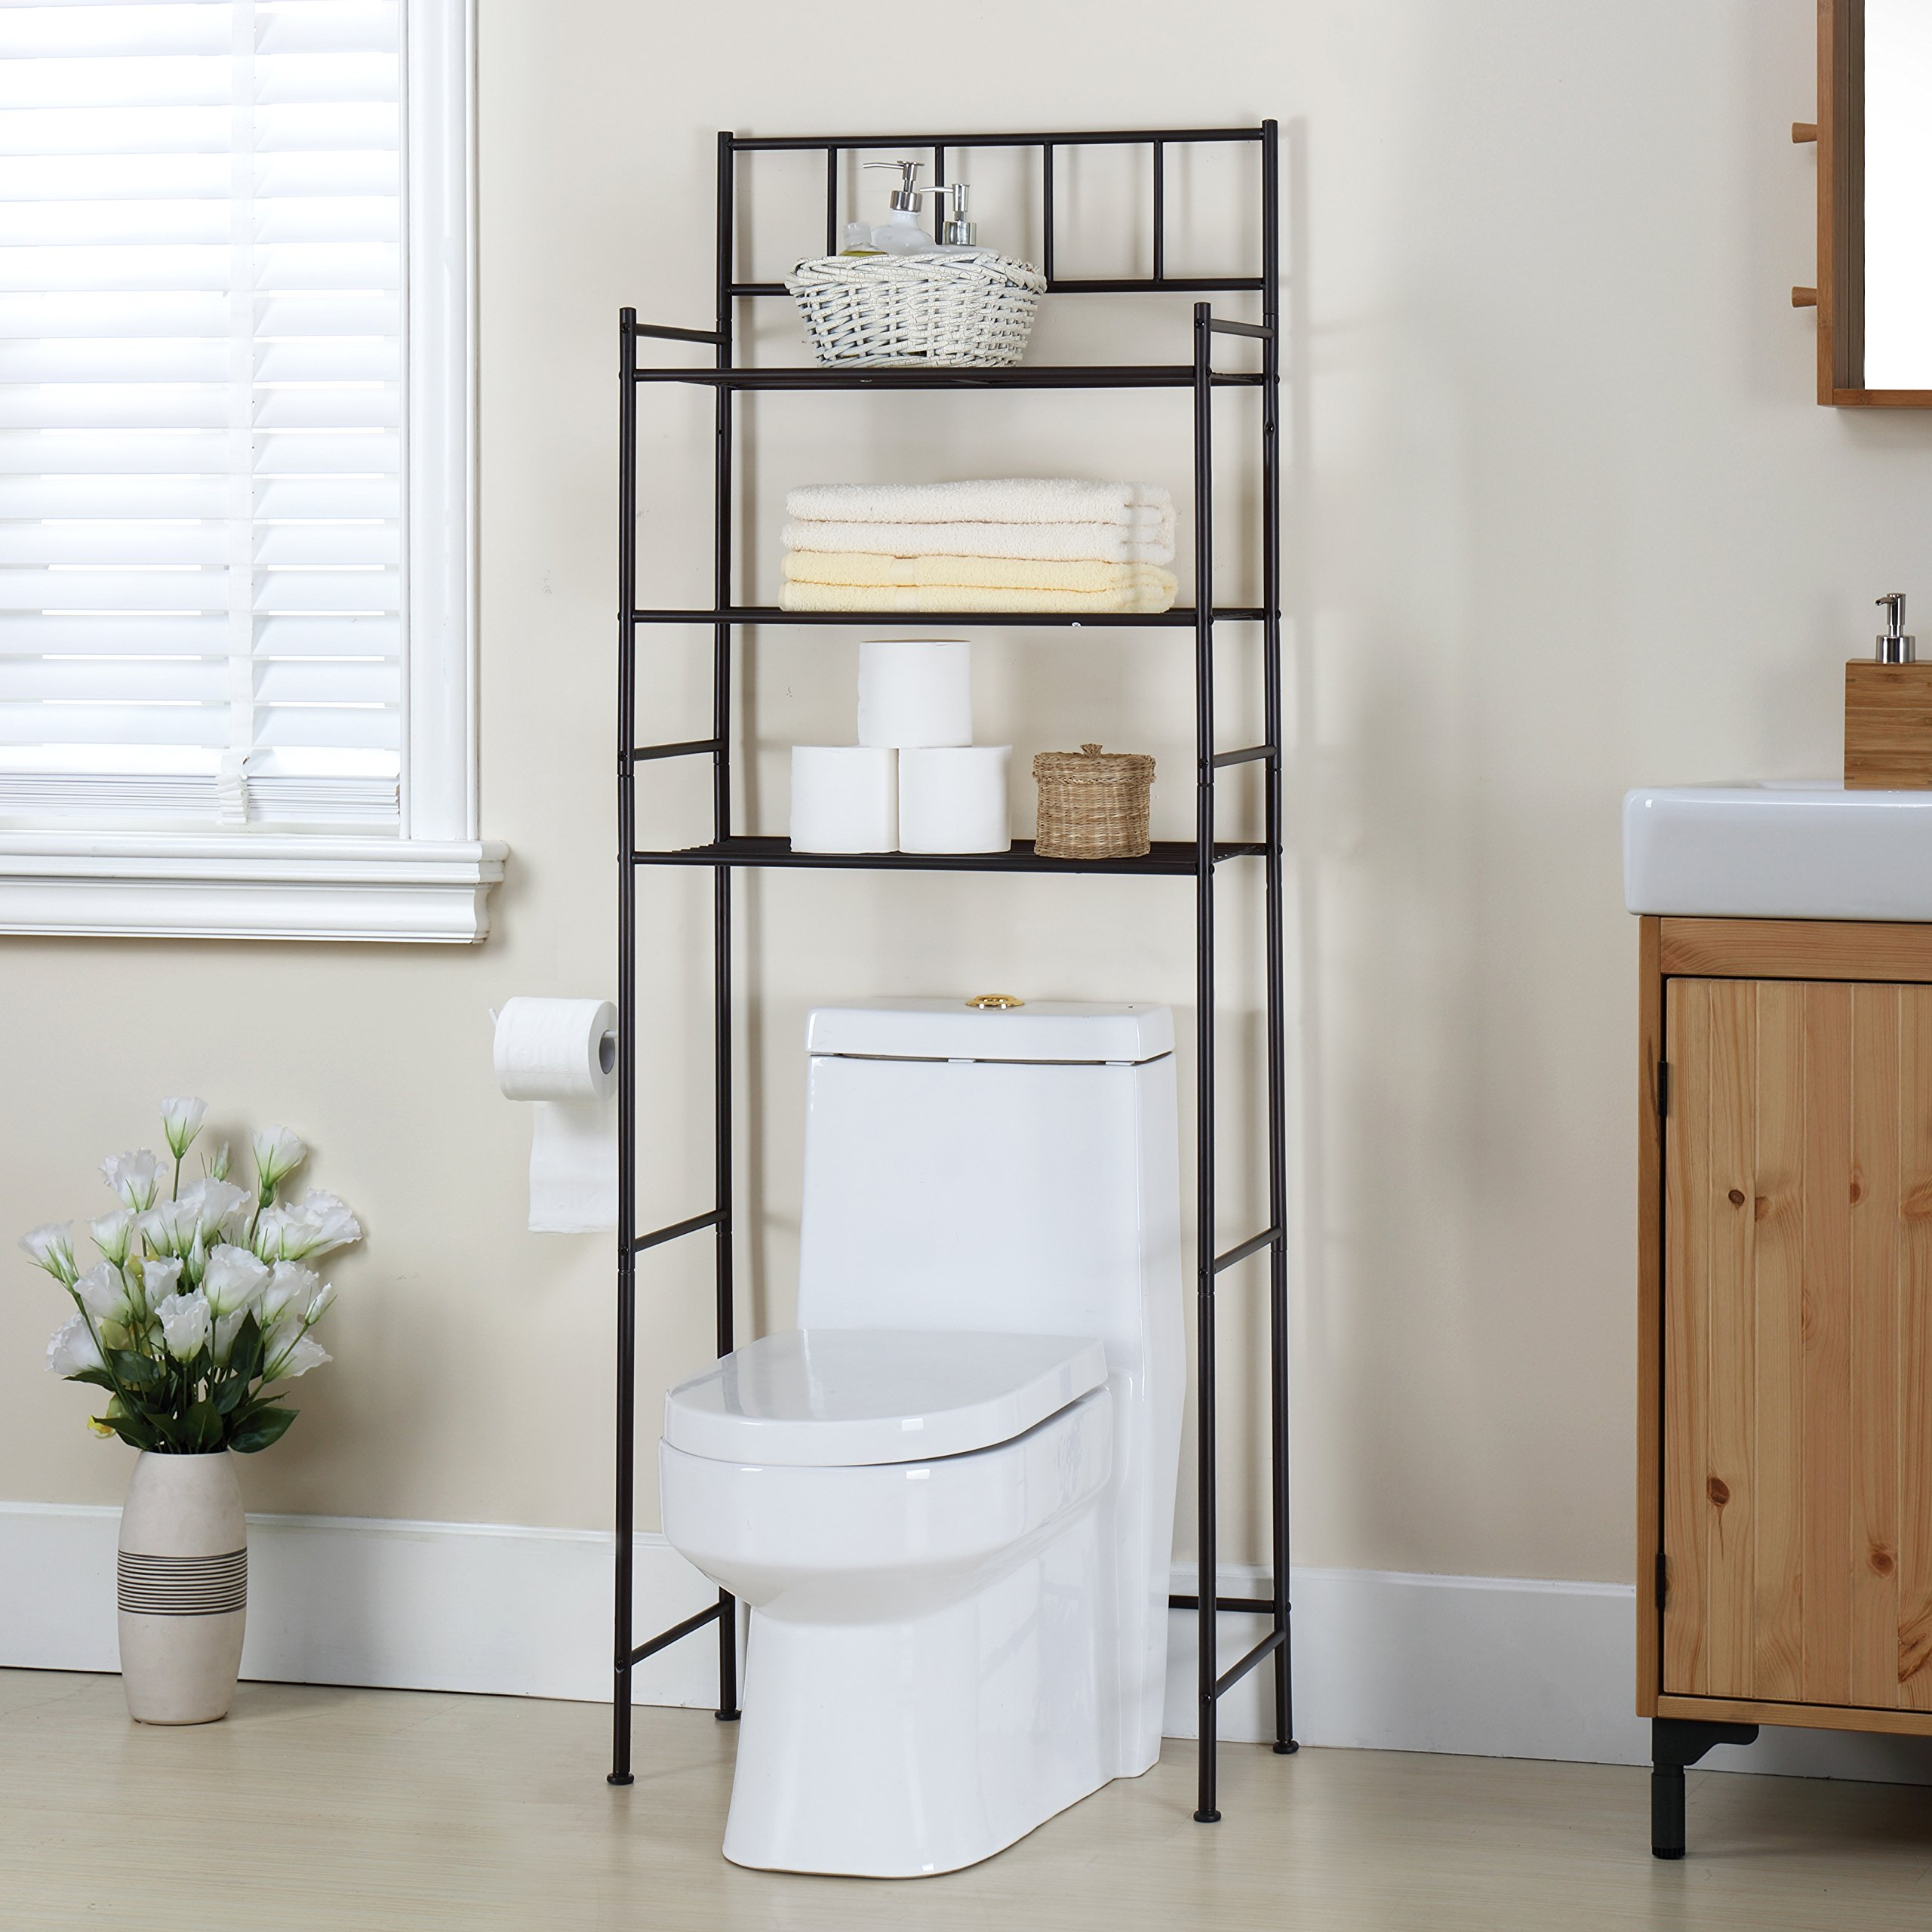 Finnhomy 3 Shelf Bathroom Space Saver Over the Toilet Rack Bathroom Corner Stand Storage Organizer Accessories Bathroom Cabinet Tower Shelf with ORB Finish 23.5'' W x 10.5'' D x 64.5'' H